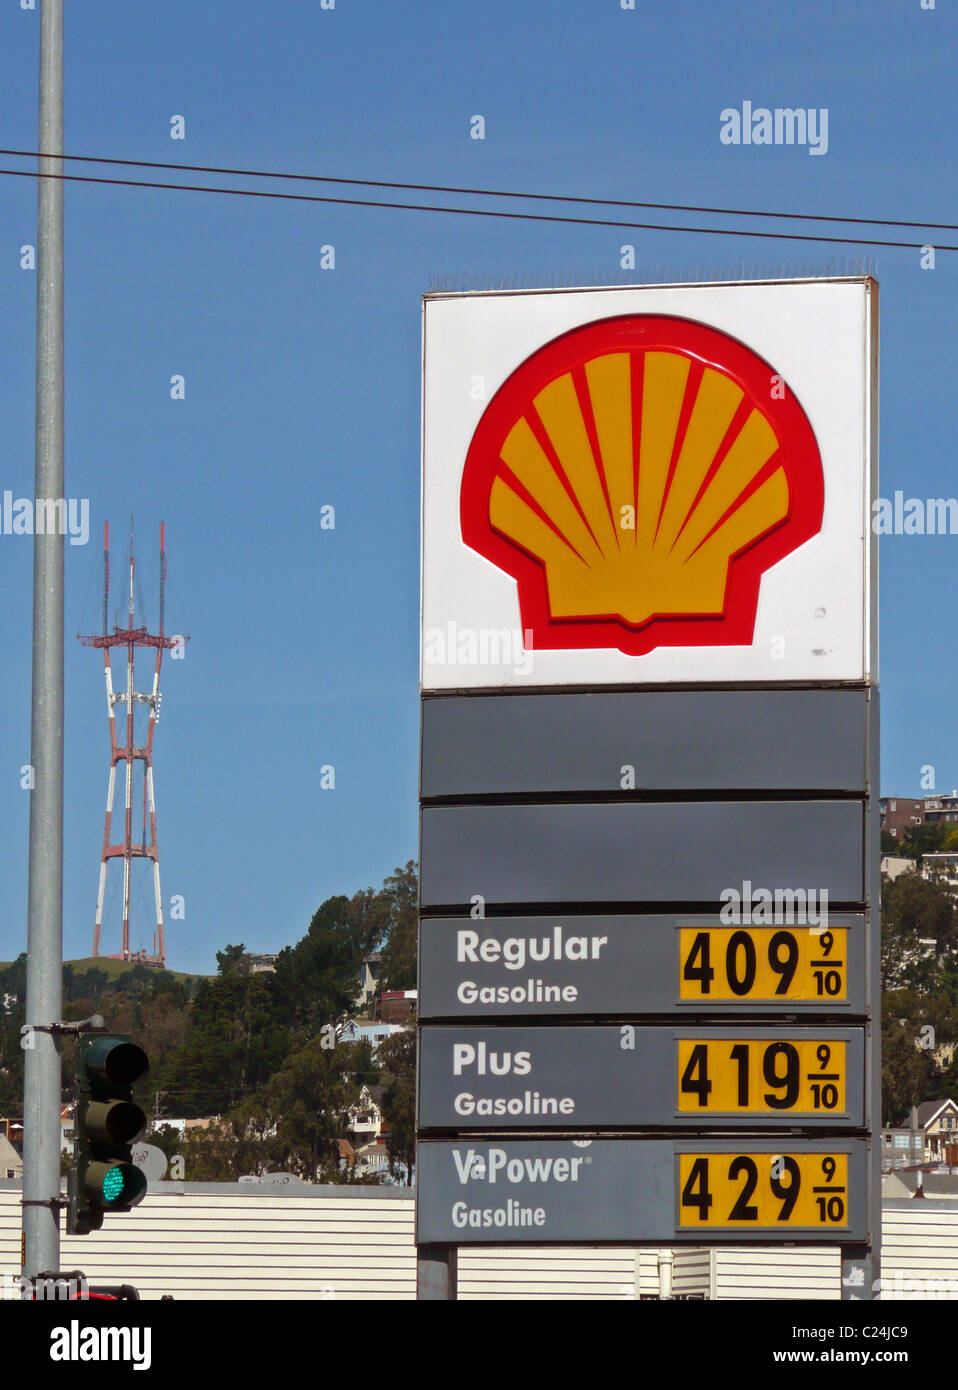 shell gas station sign showing gasoline prices over 4 per